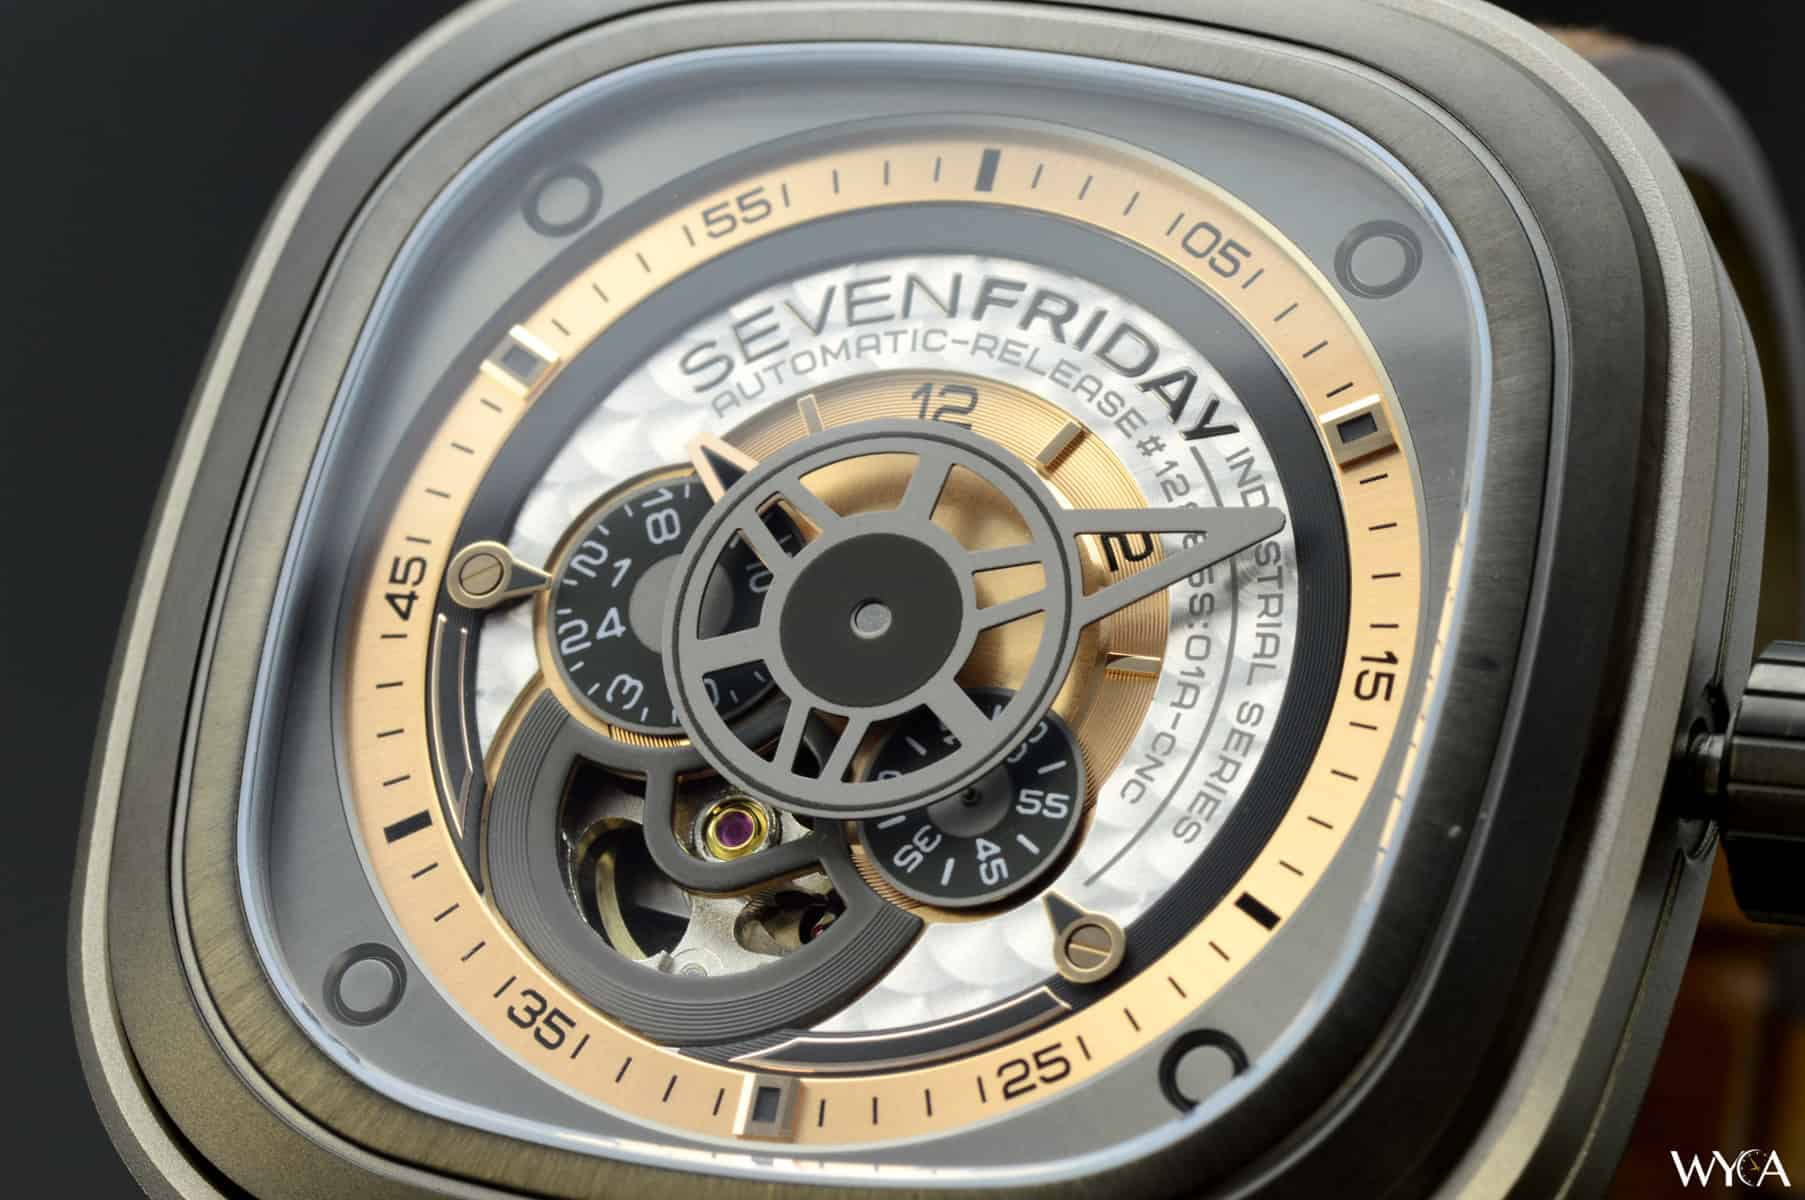 SEVENFRIDAY P-Series P2/01 Watch Review